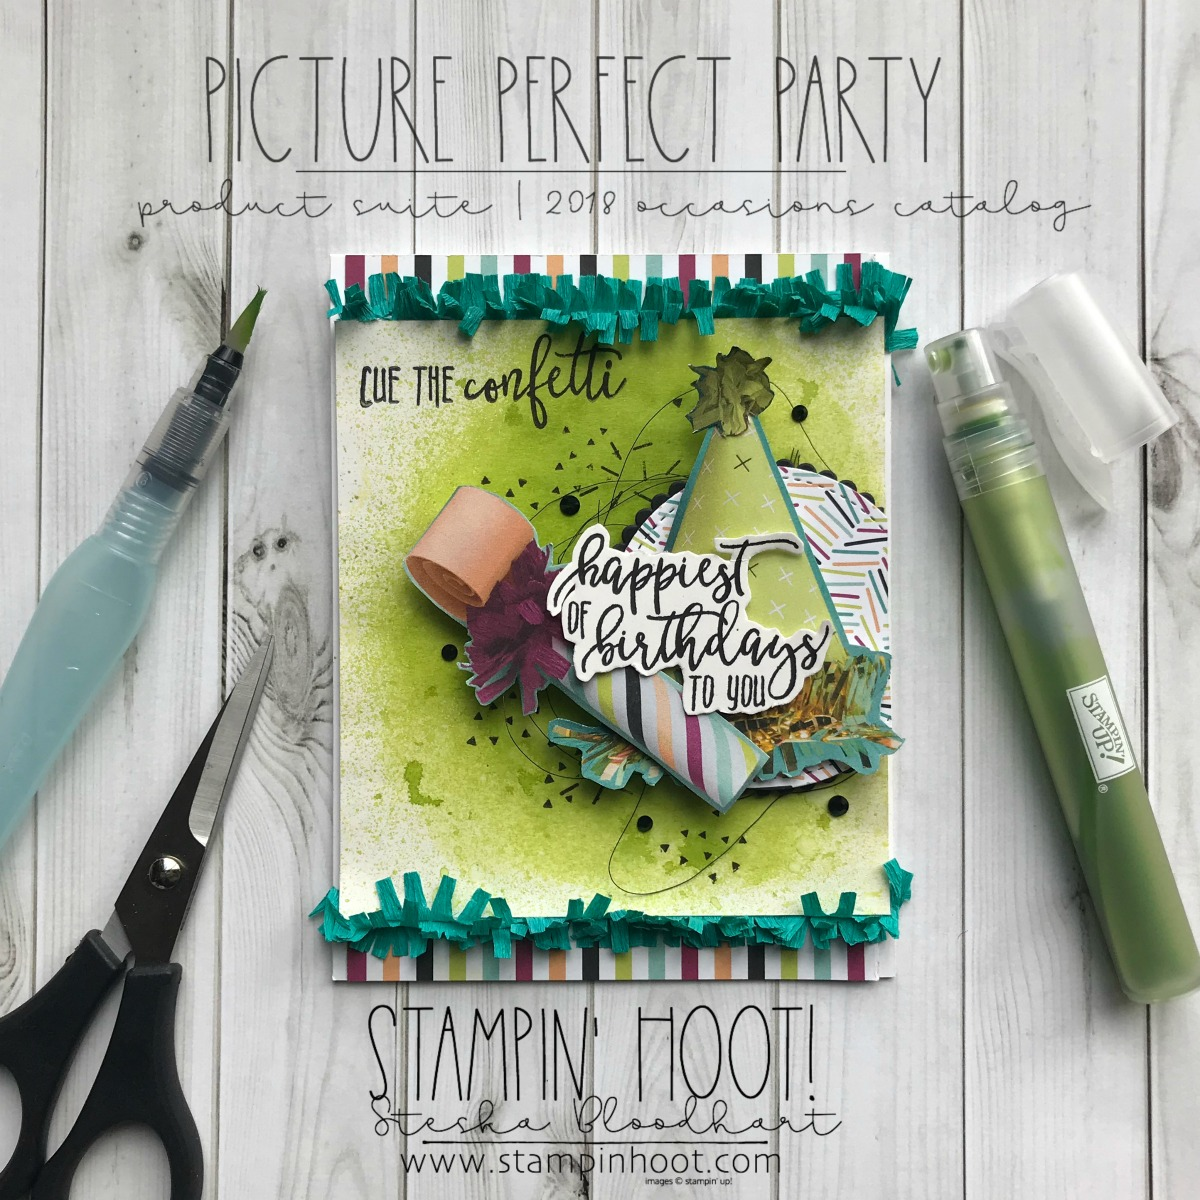 Picture Perfect Party by Stampin' Up! Birthday Card created by Stesha Bloodhart, Stampin' Hoot! Items shown are retiring May 31st, 2018 or While Supplies Last #stampinhoot #steshabloodhart